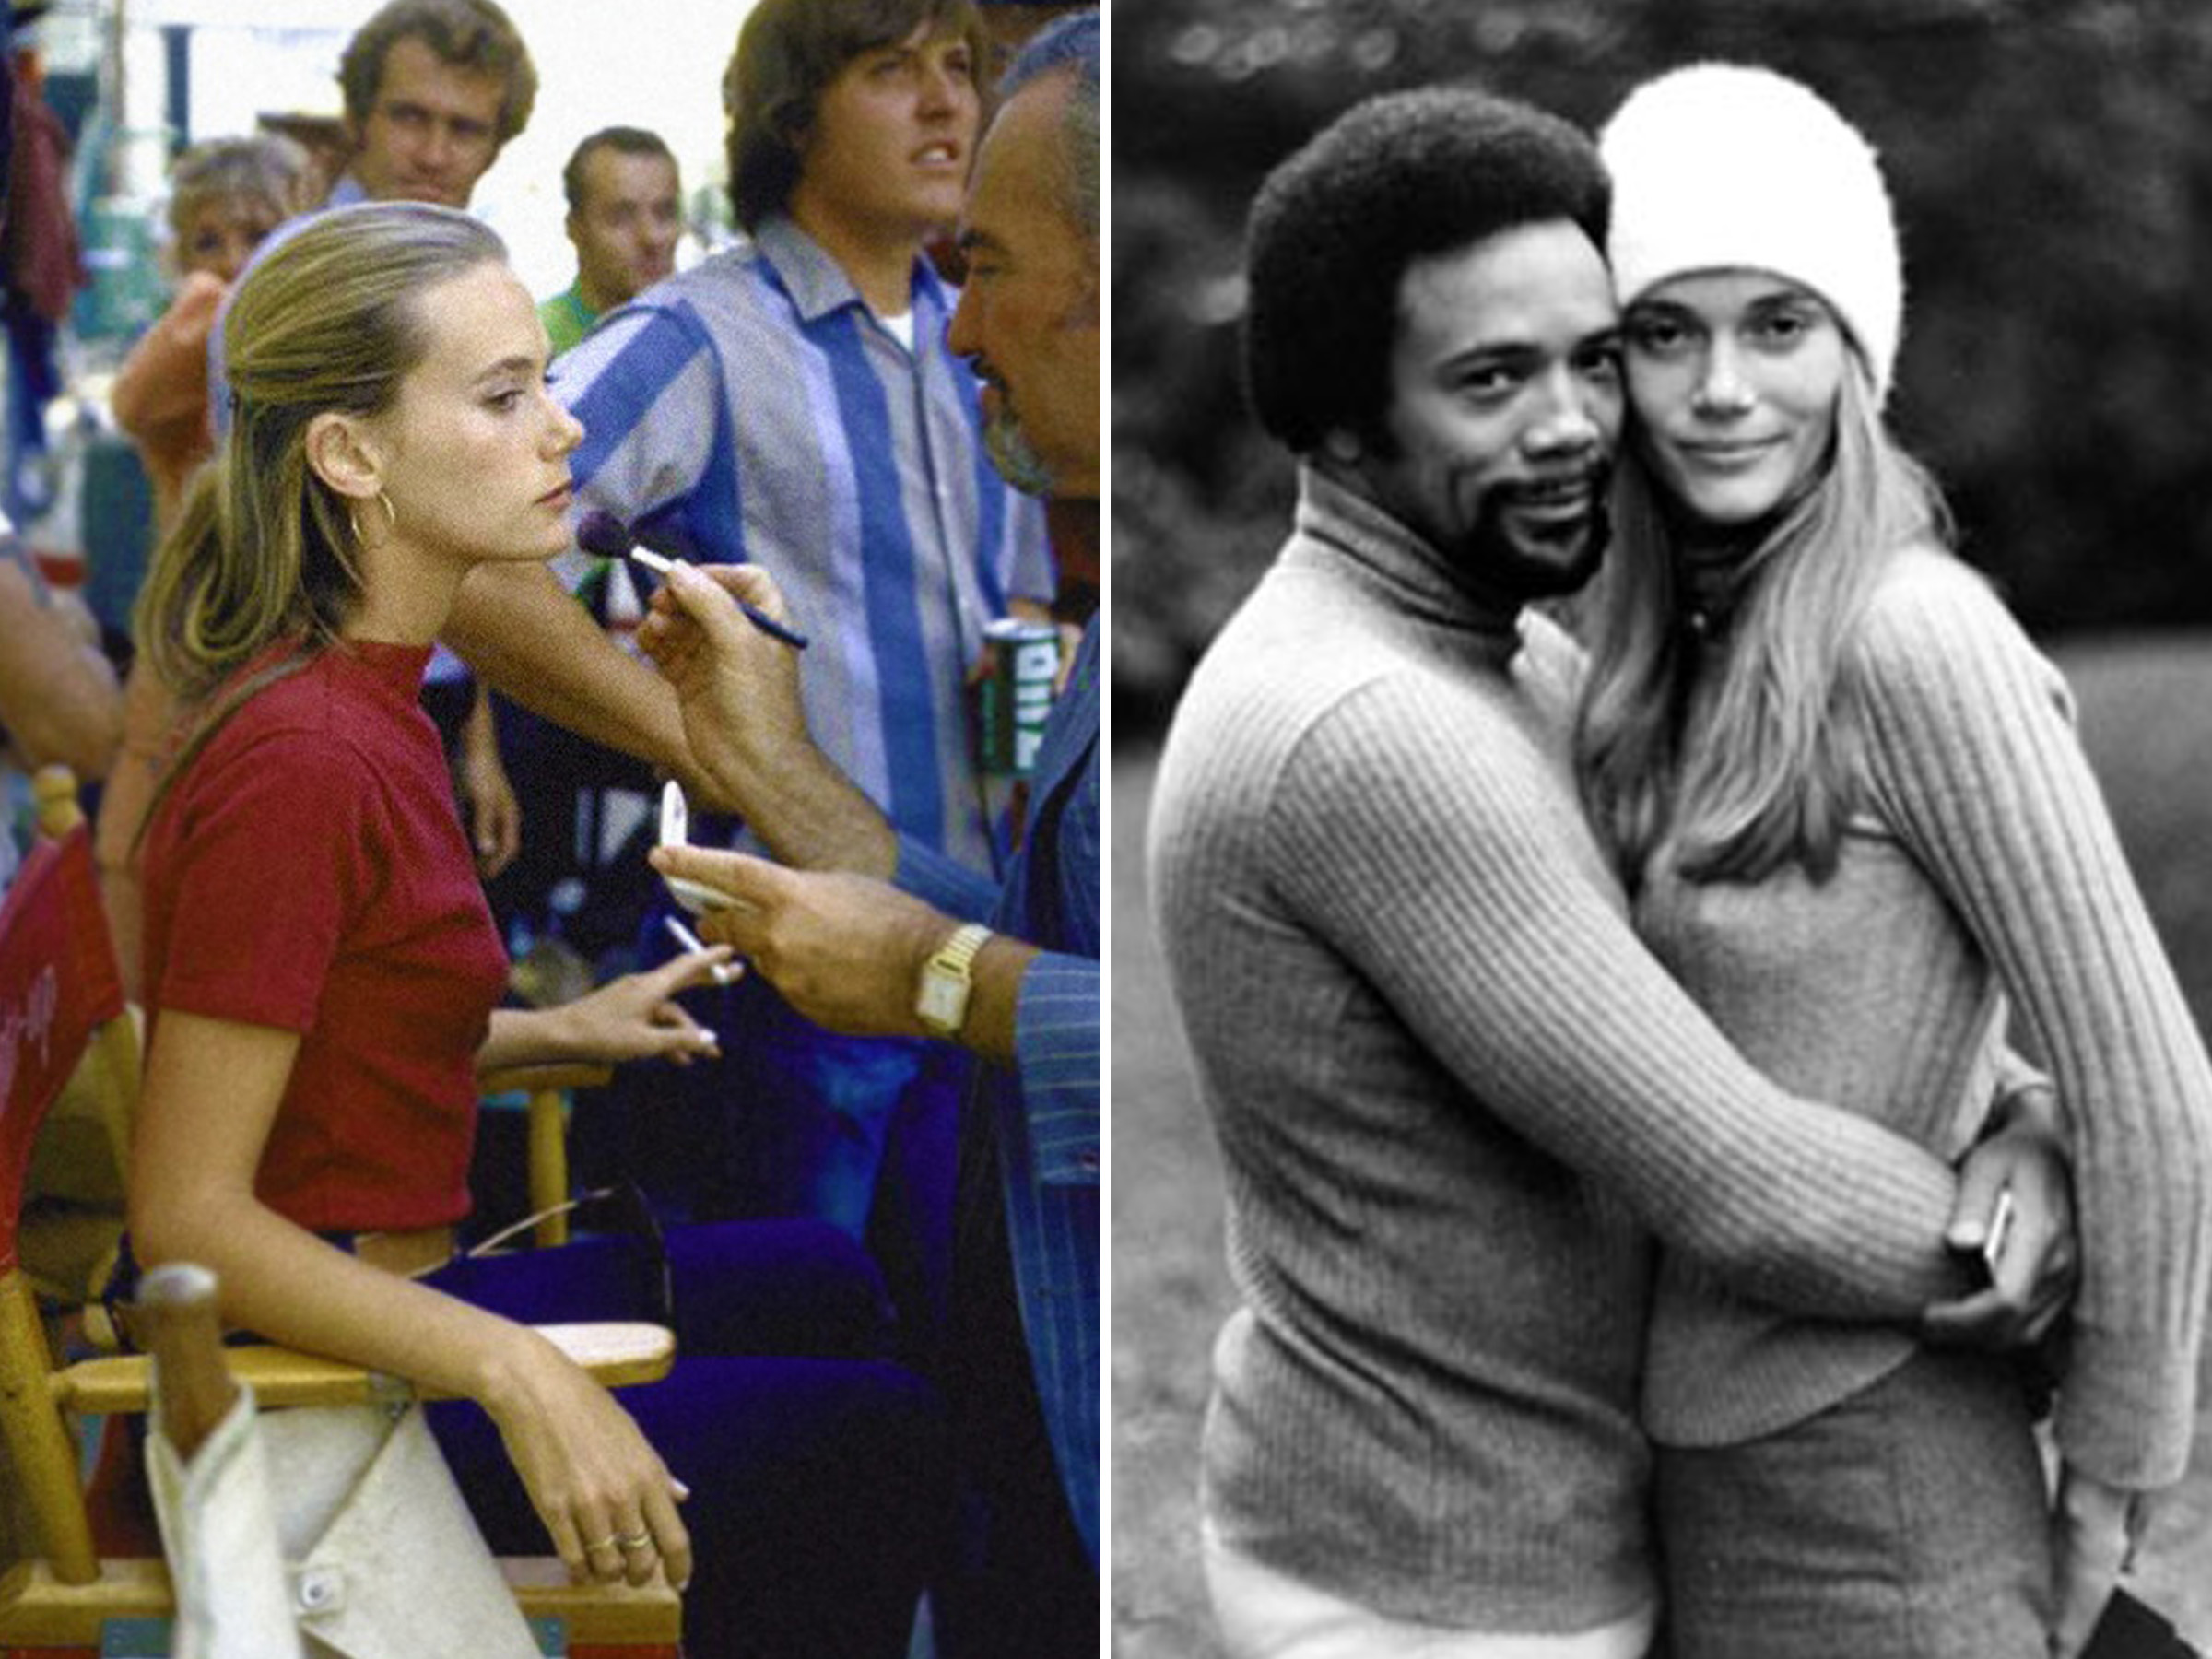 images Peggy Lipton